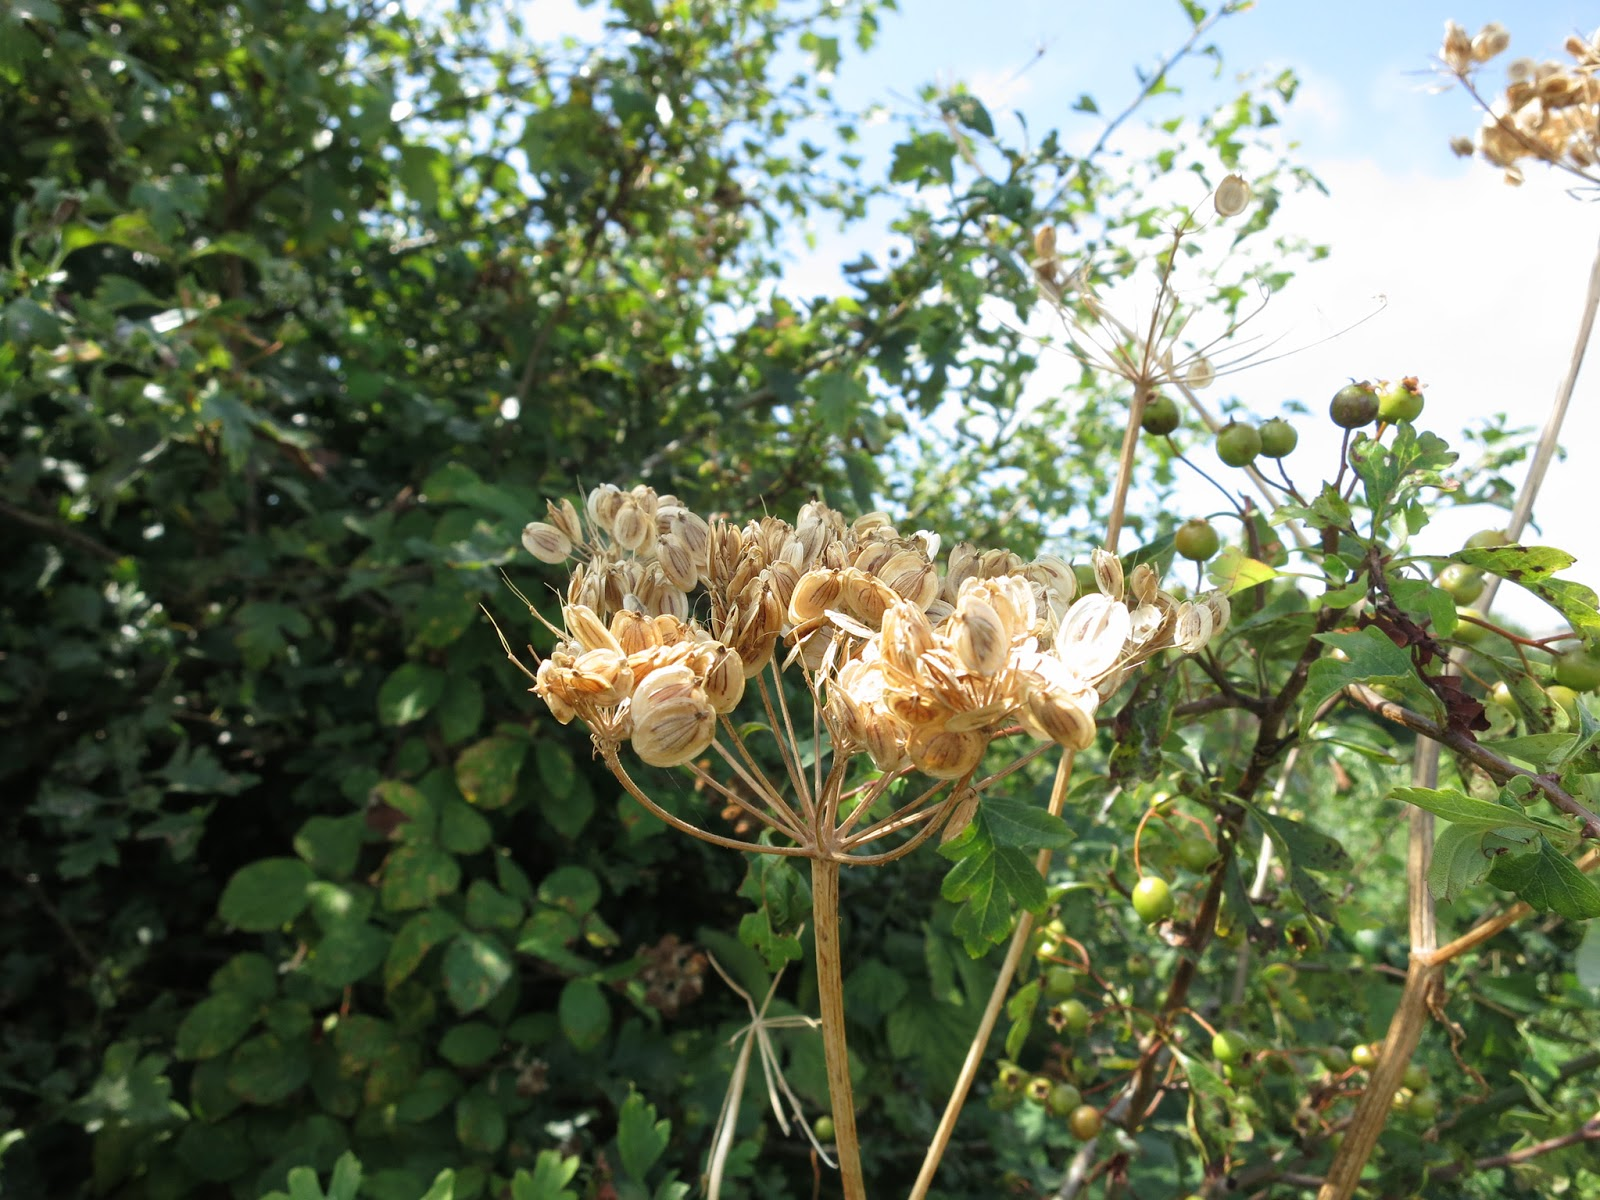 Seeds of an umbelliferous plant in a hedgerow